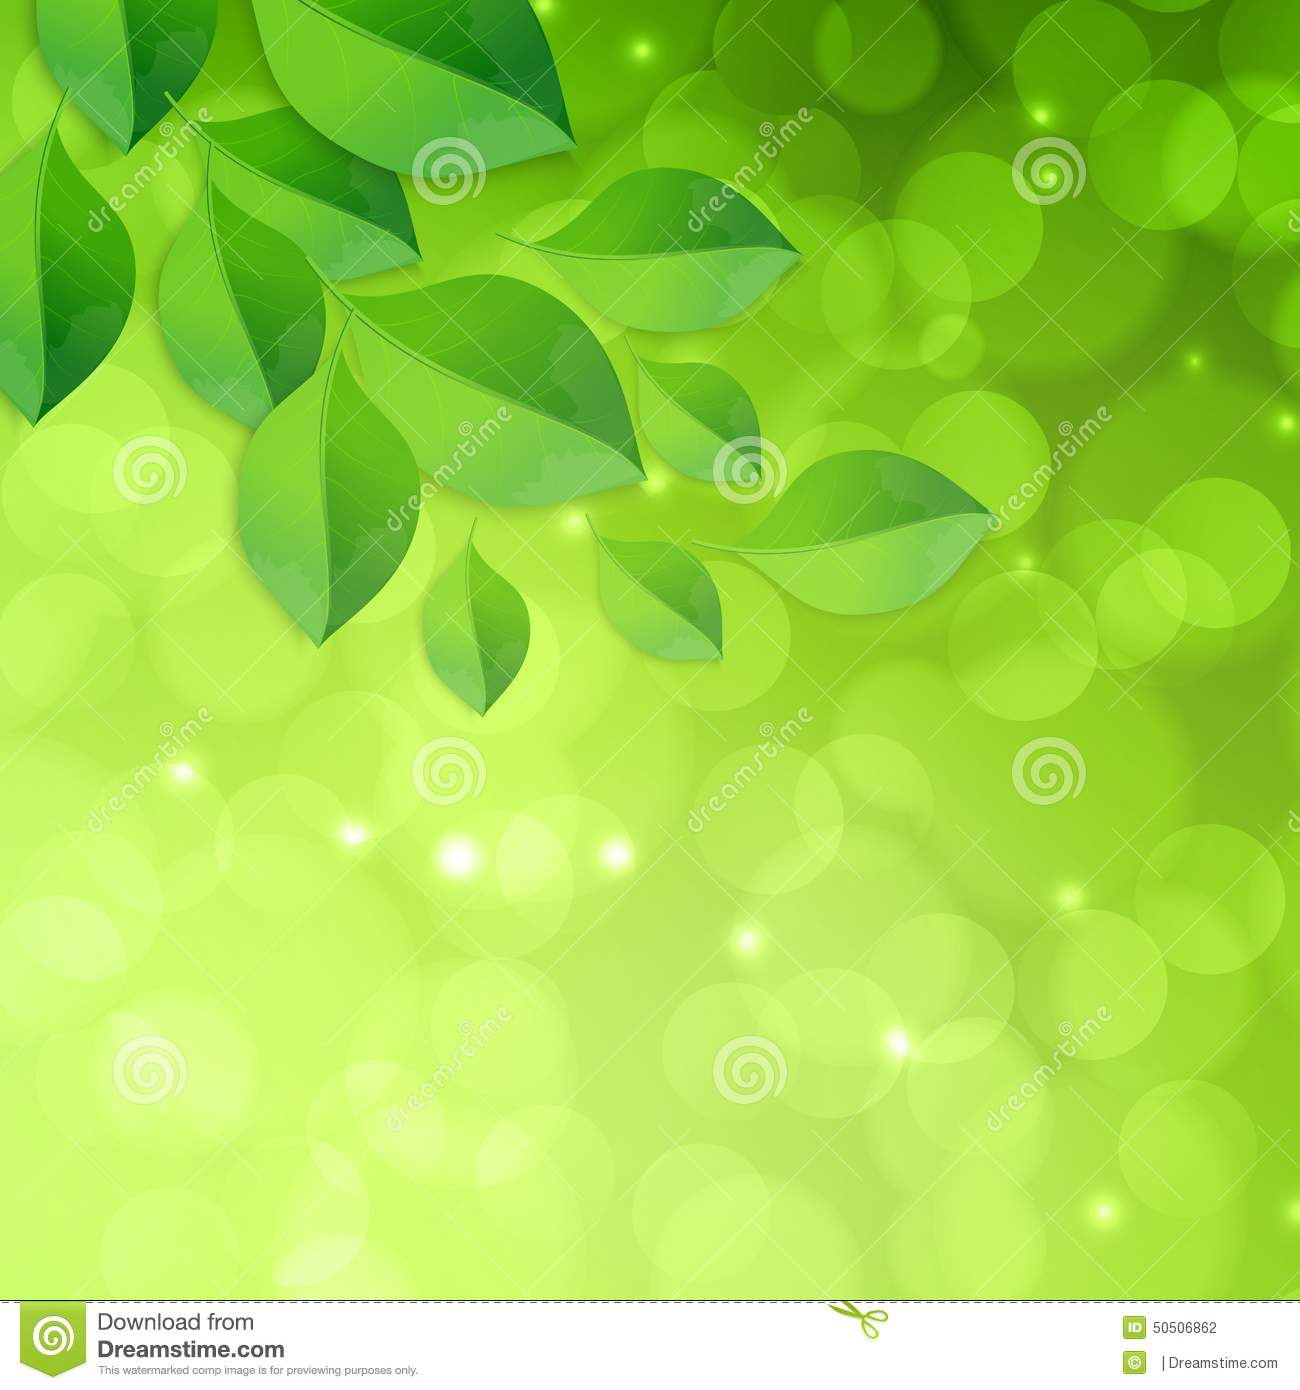 light green leaves background - photo #18